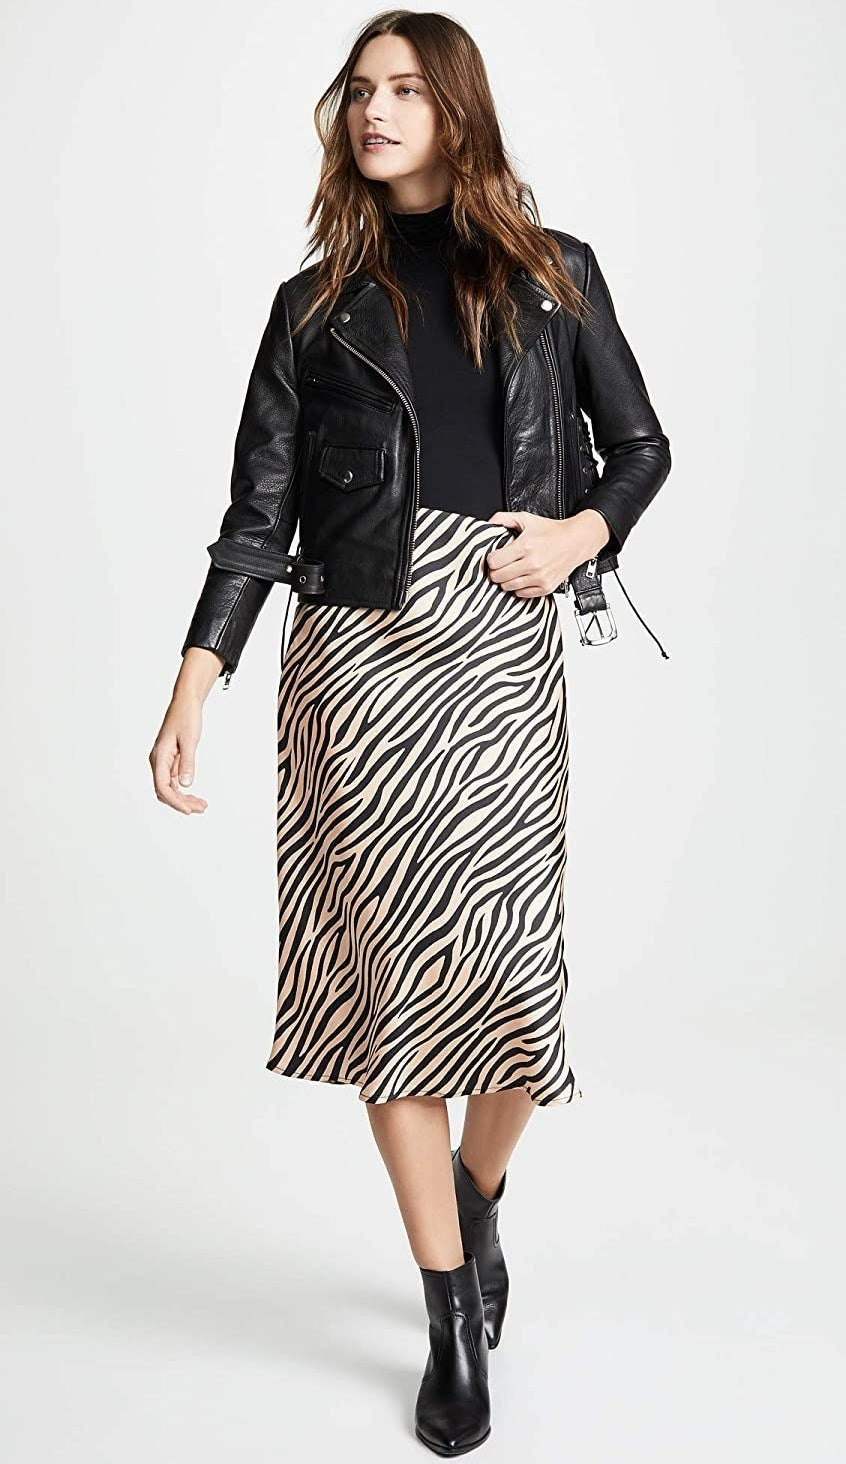 A model wearing the black and tan below-the-knee skirt with a moto jacket